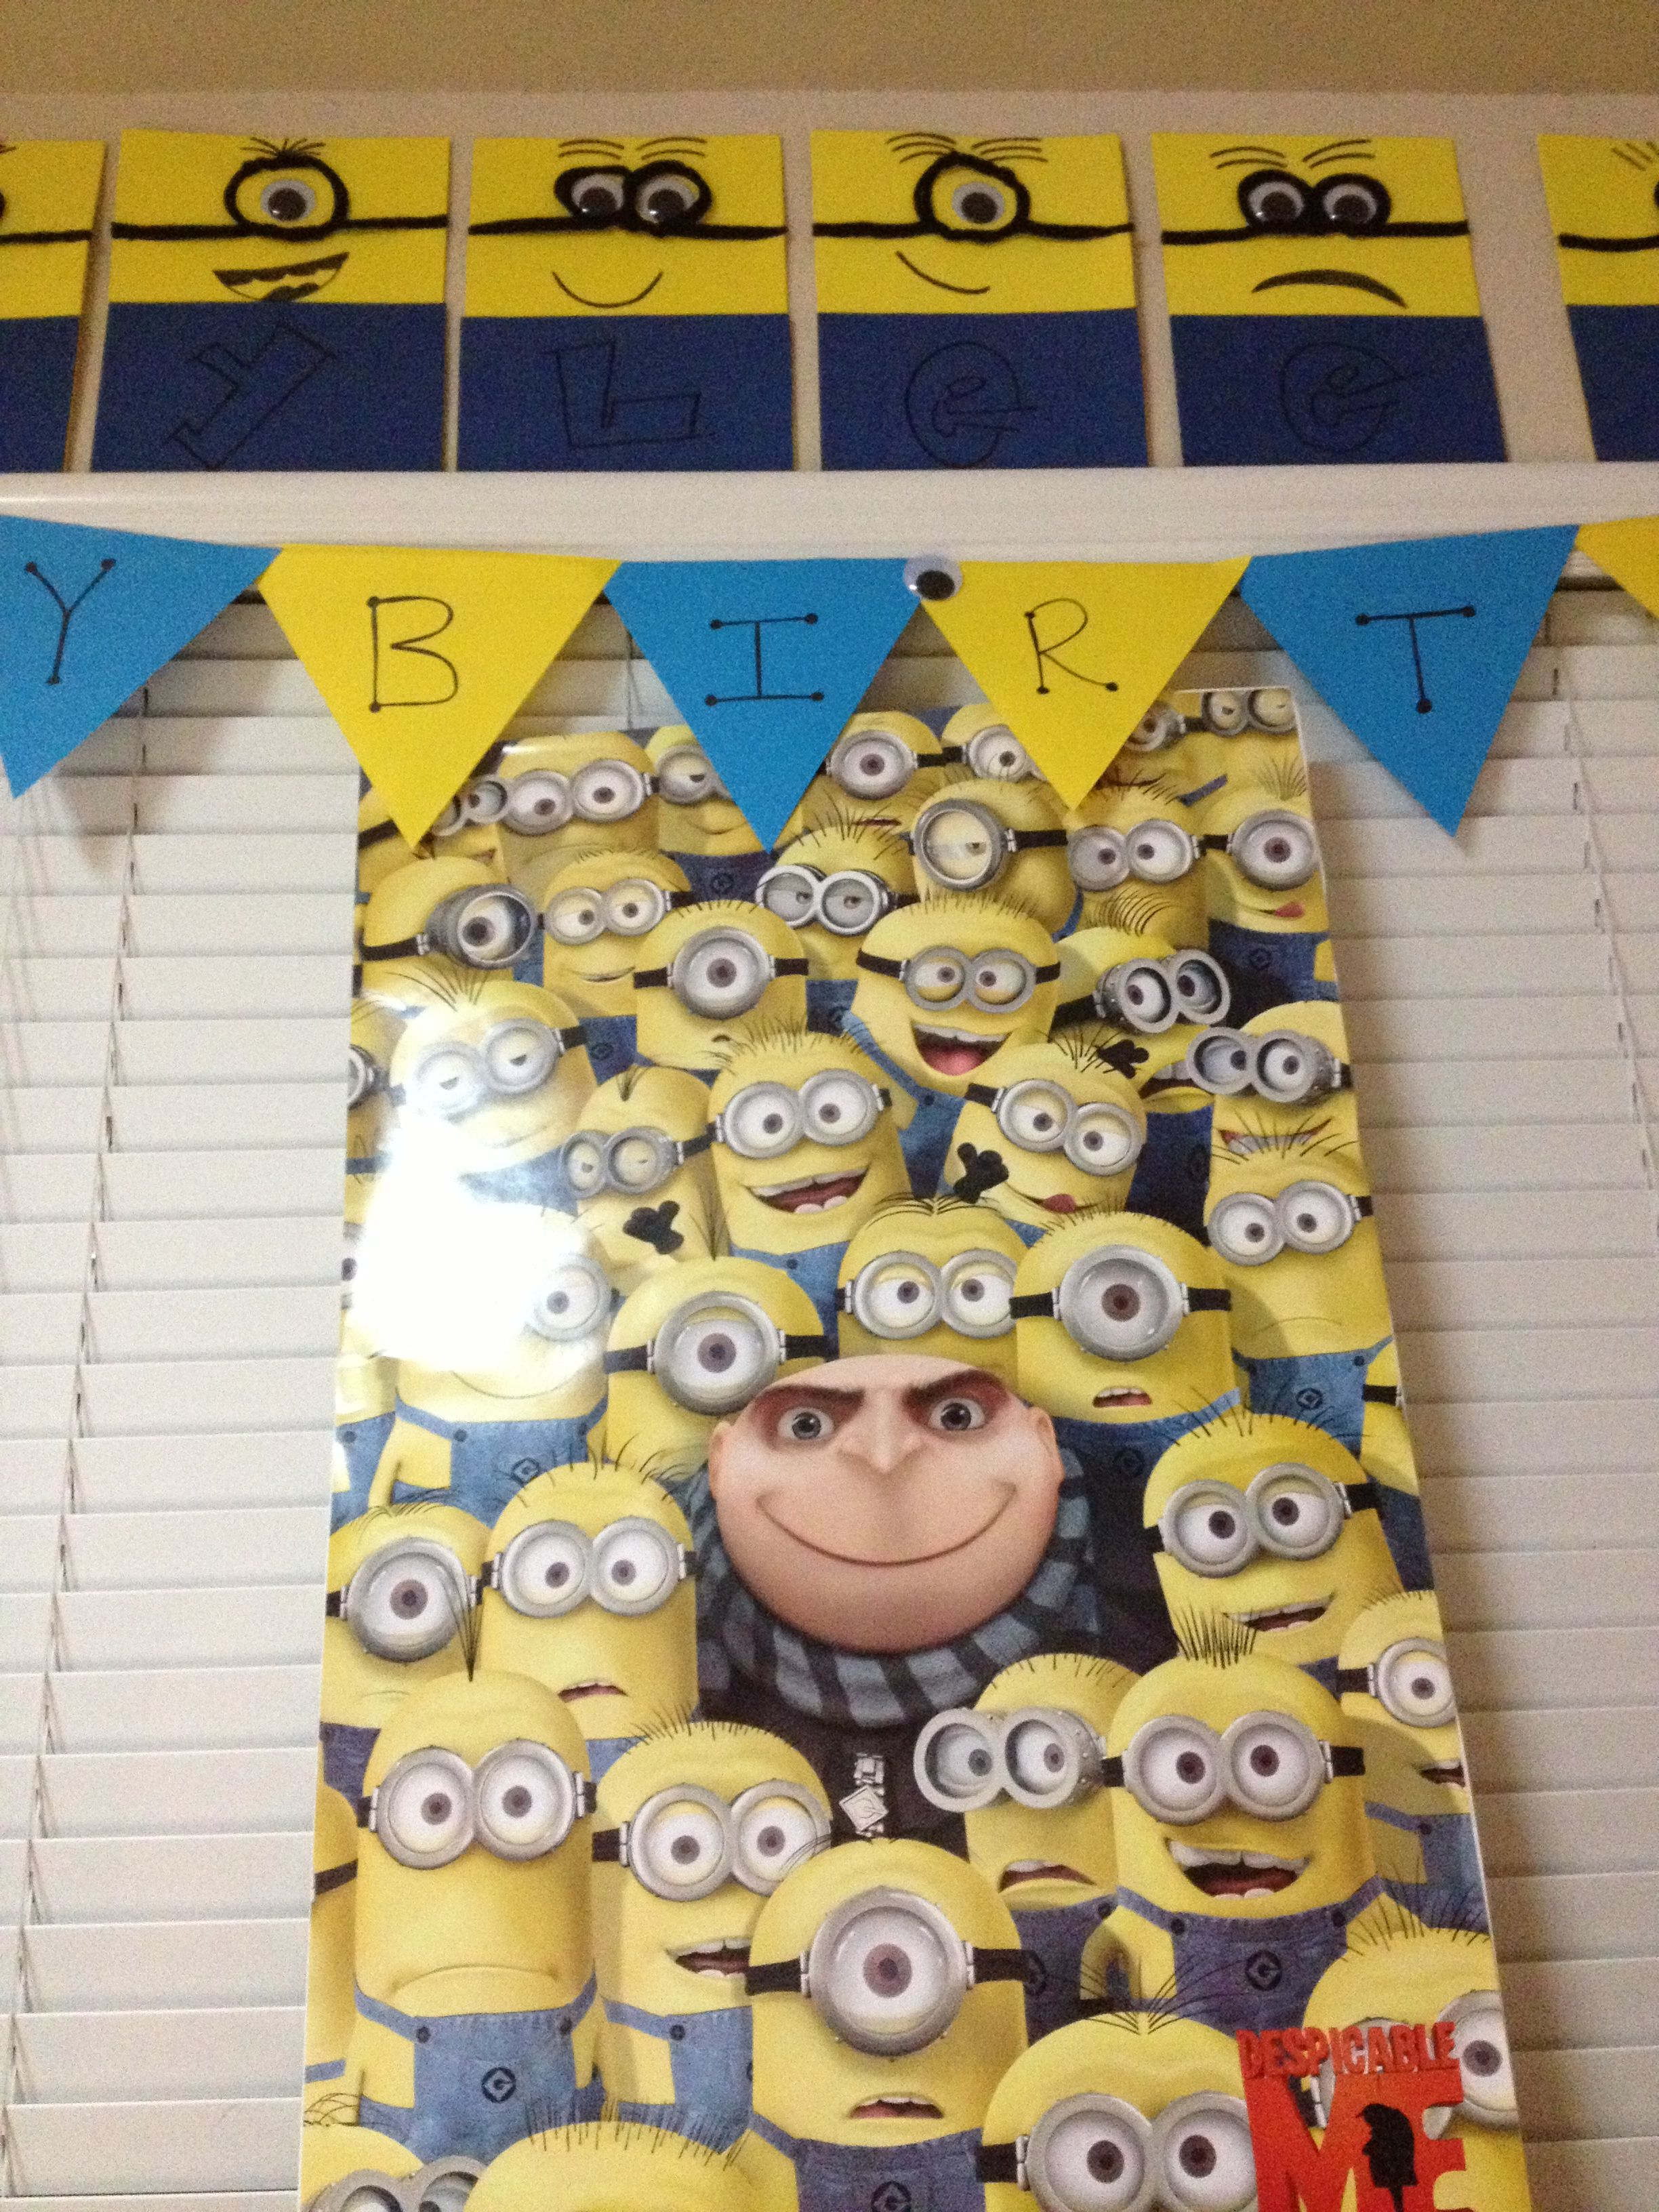 Minion decorations for Rylees birthday party Created by Me